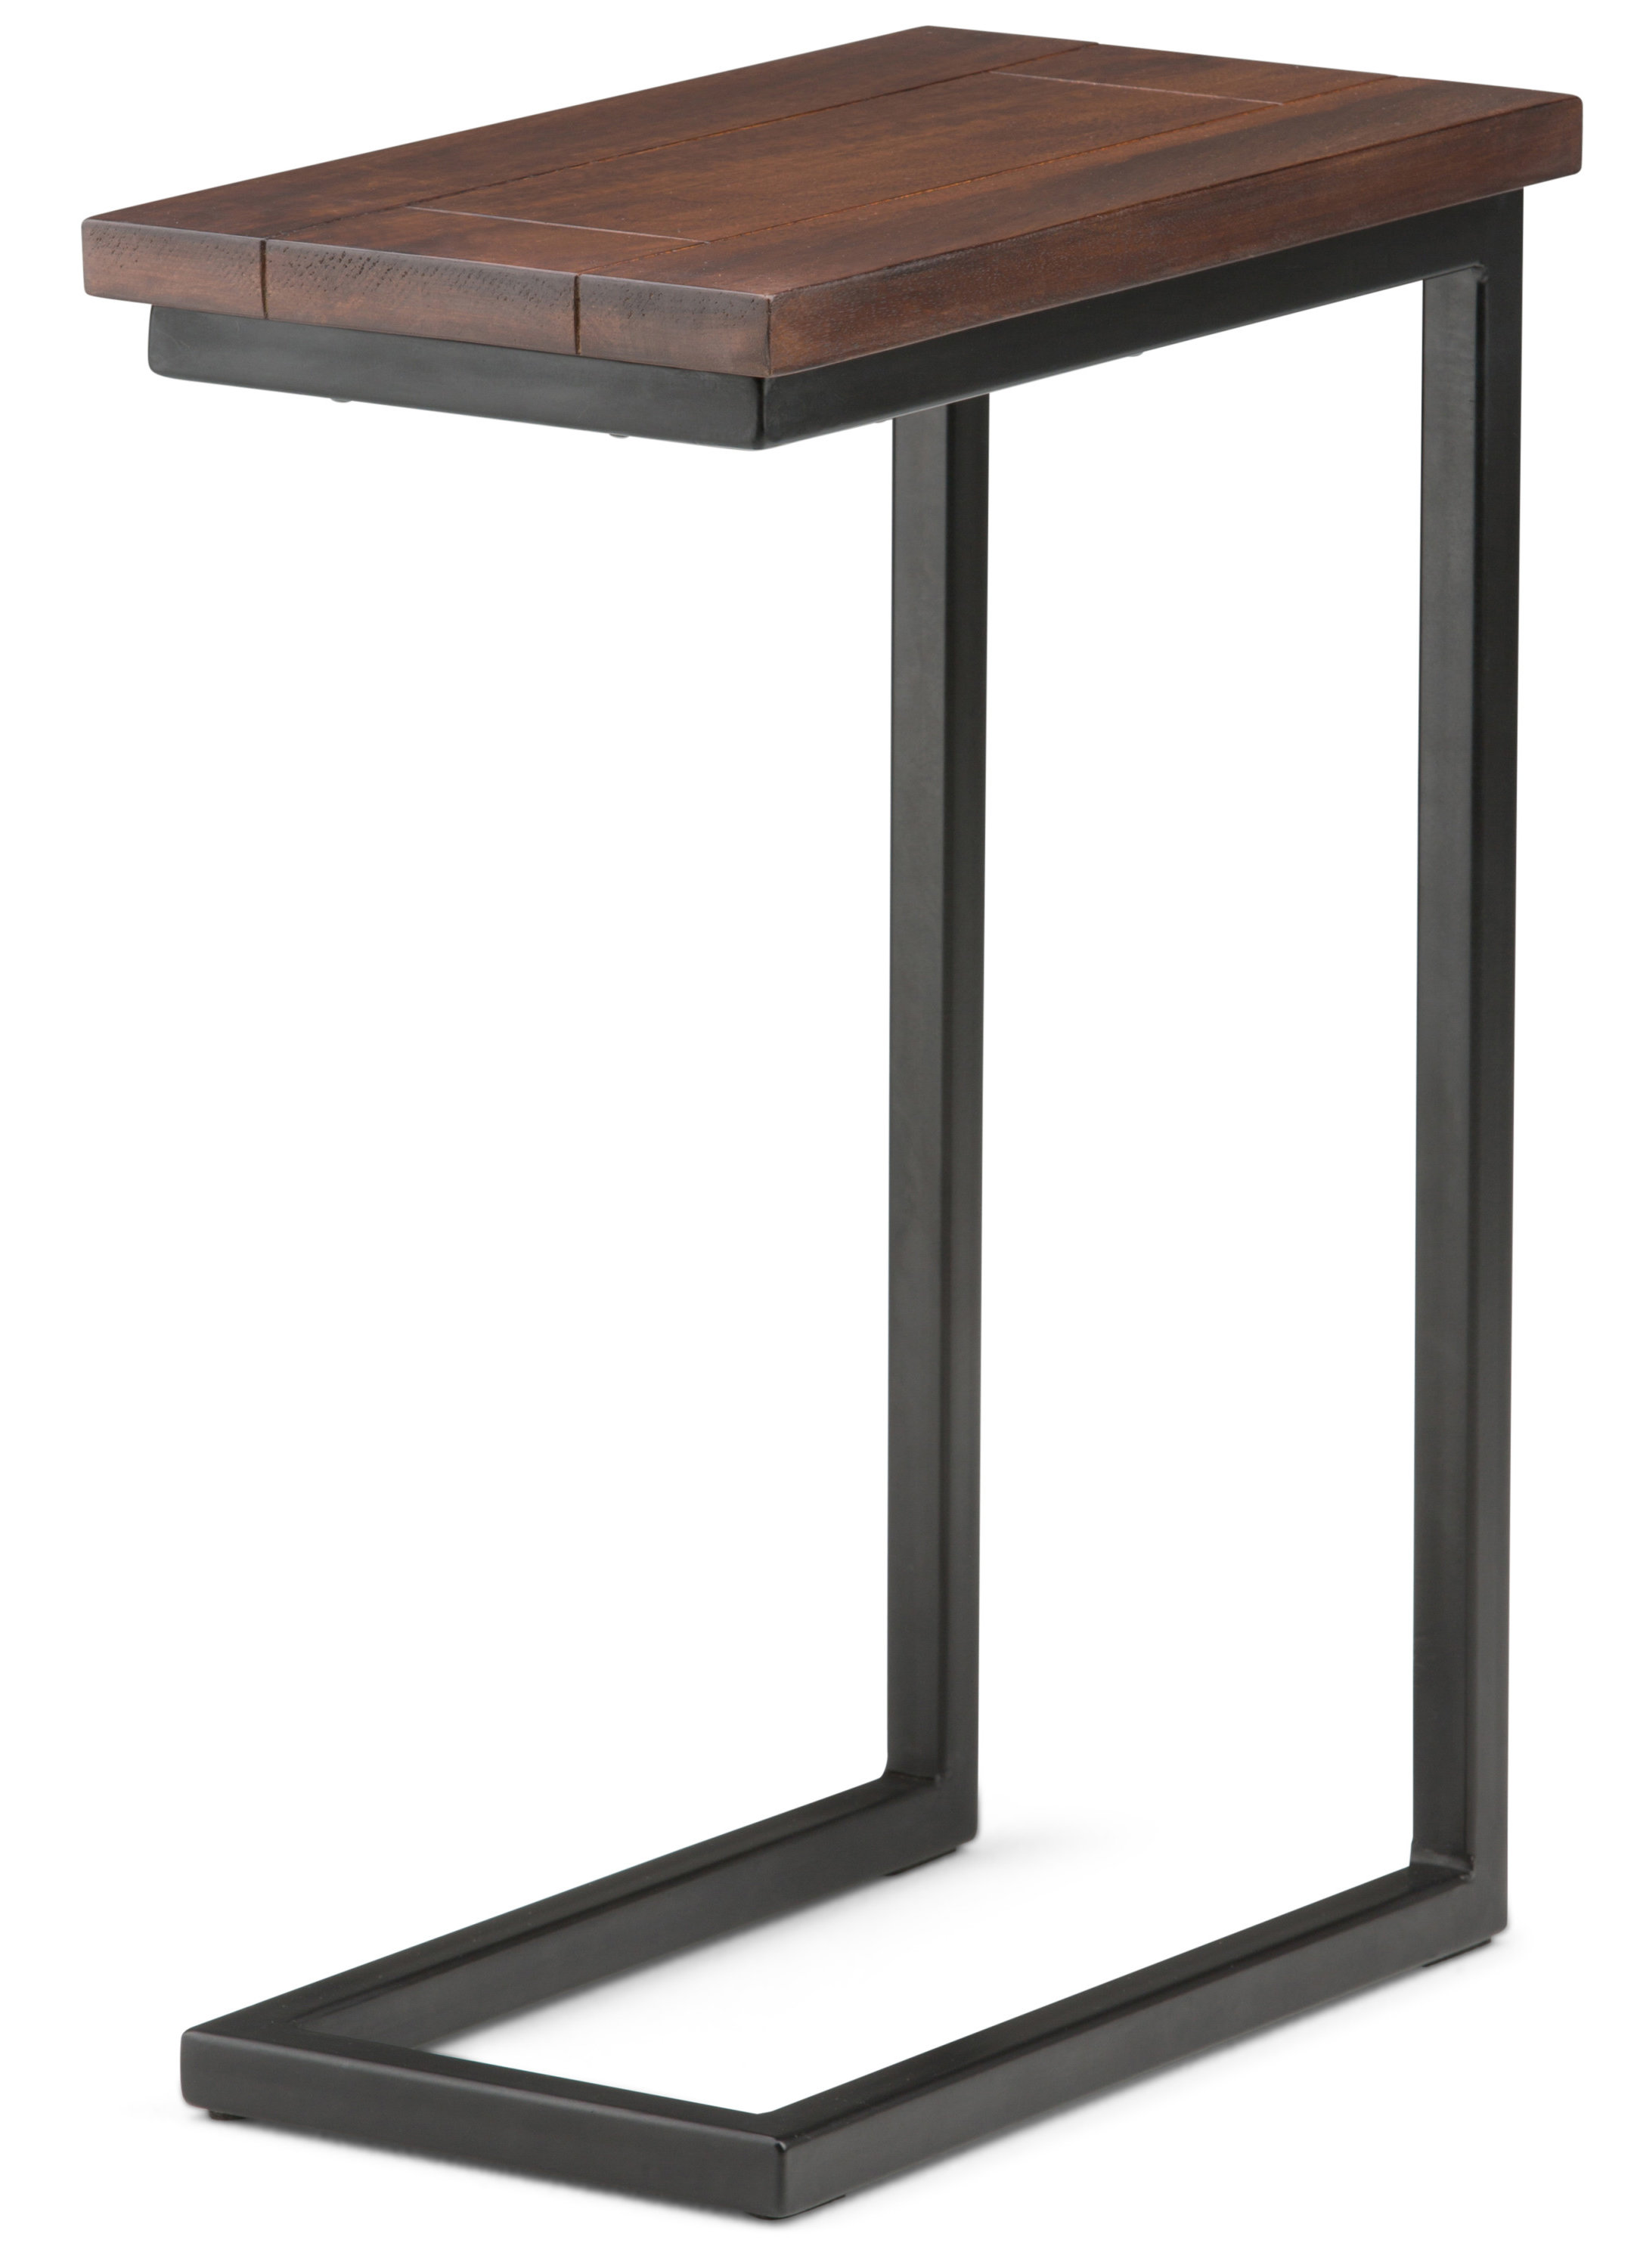 small end tables you love skyler table patchen accent modern furniture and lighting very oak side round vinyl tablecloth winsome wood timber night stand target collections ikea